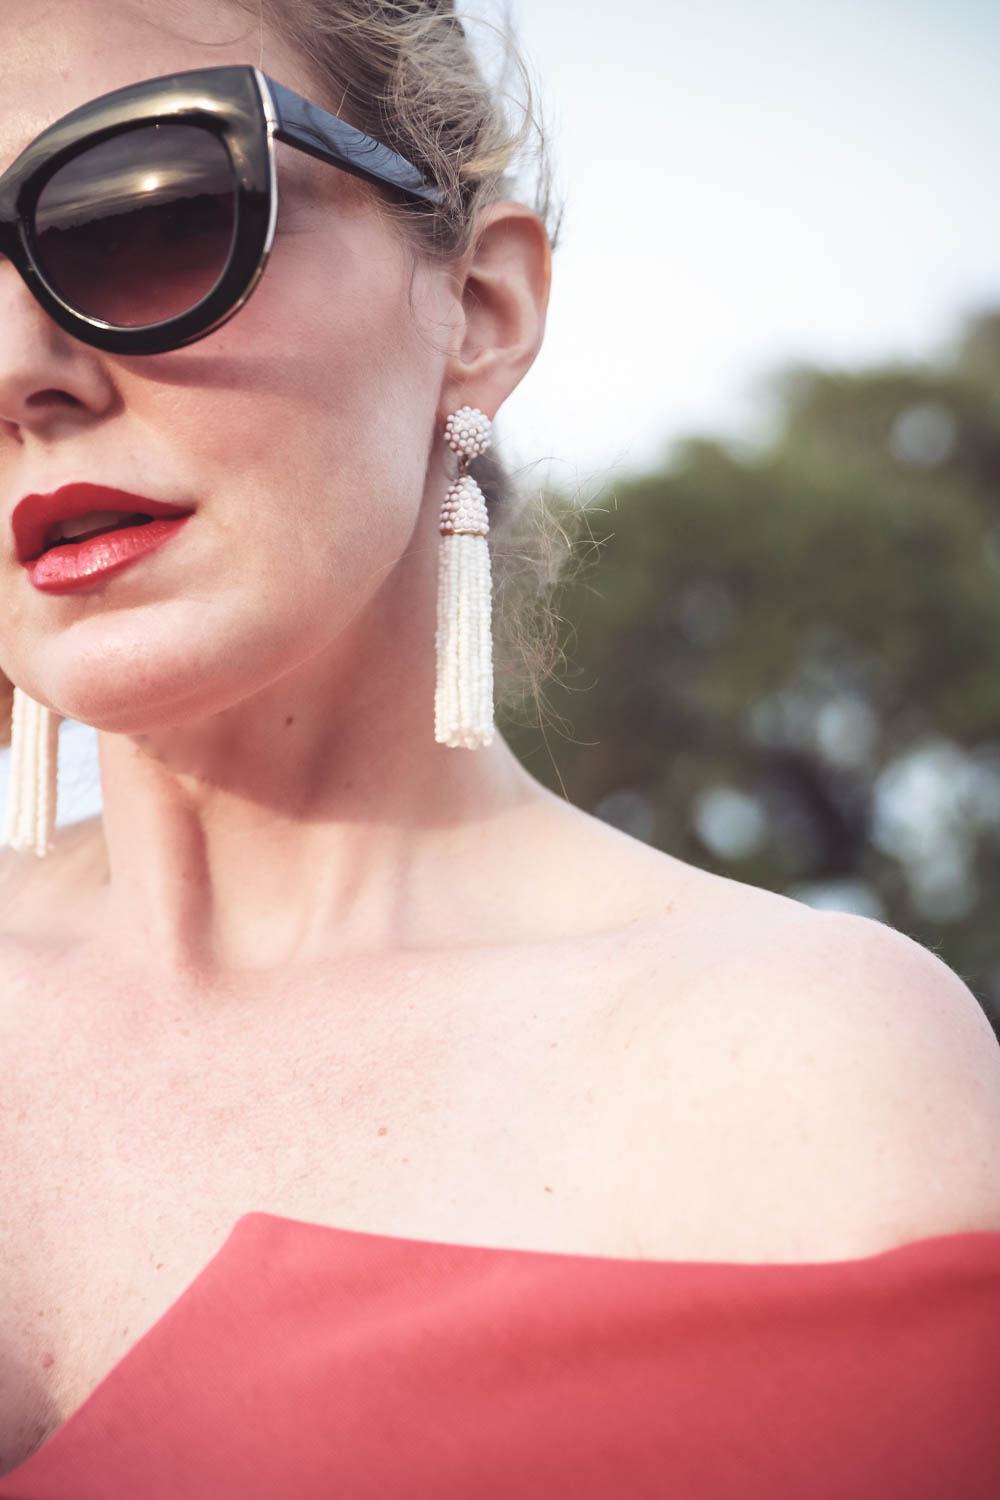 White tassel earrings by Baublebar, What to wear to a wedding as a guest, women's dresses, outfit ideas for special events and weddings, fashion over 40, Featuring Erin Busbee, BusbeeStyle.com, fashion blogger and Fashion youtuber for busy women over 40